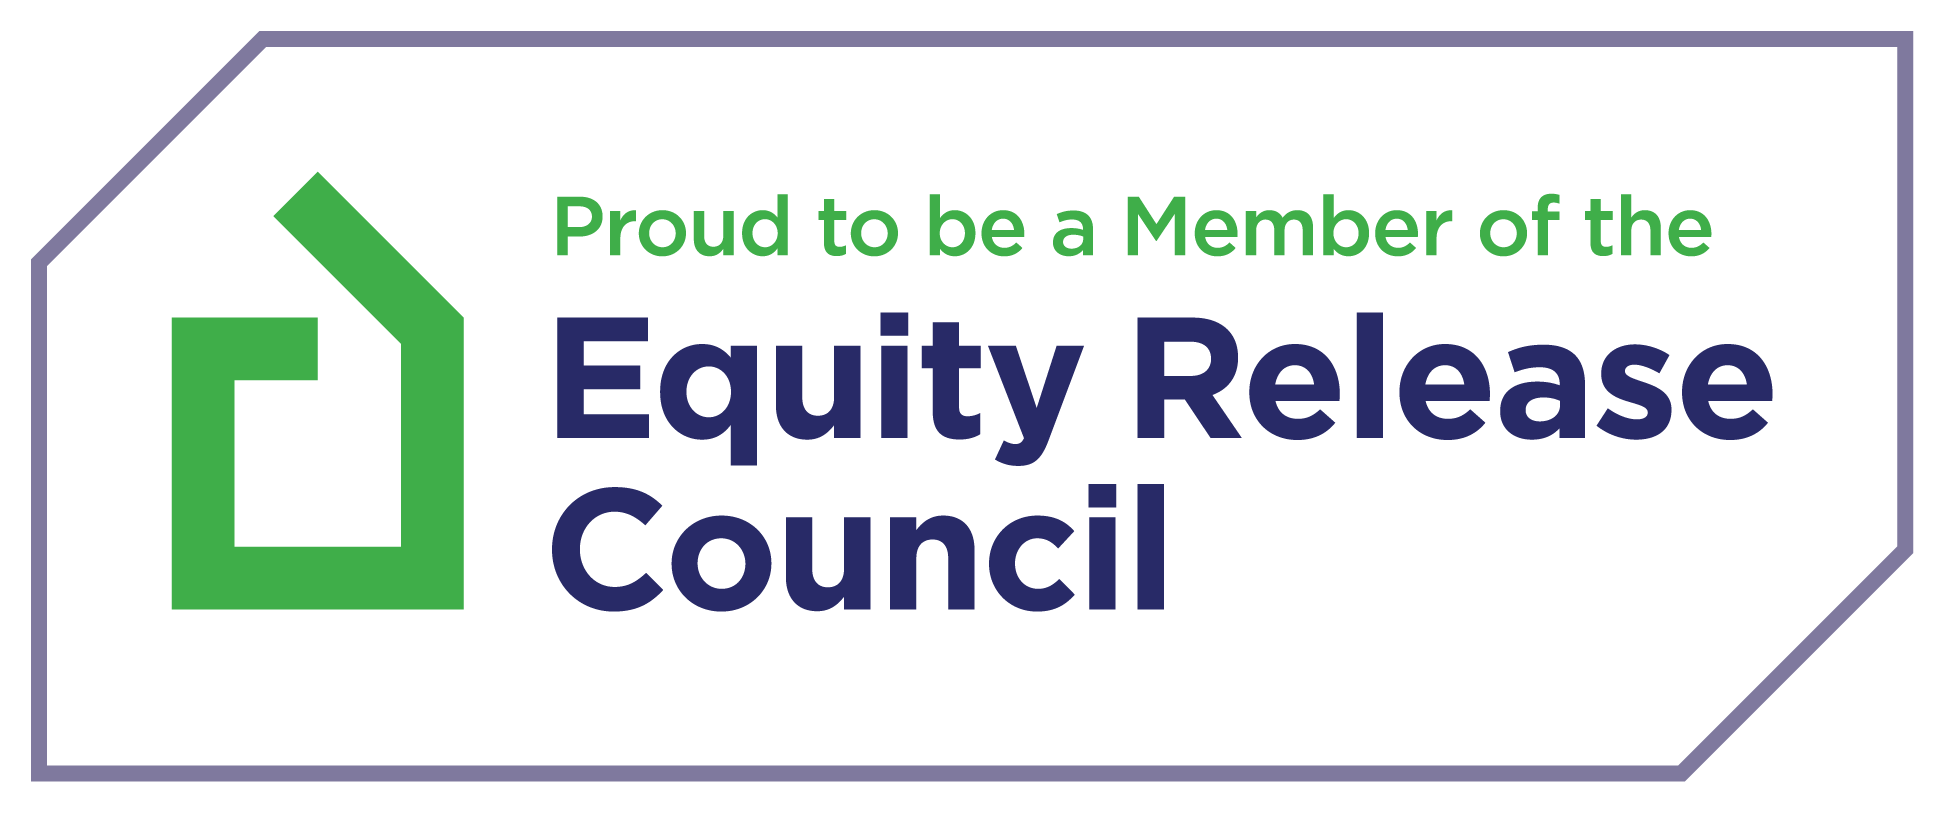 Proud to be a member of the Equity Release Council logo